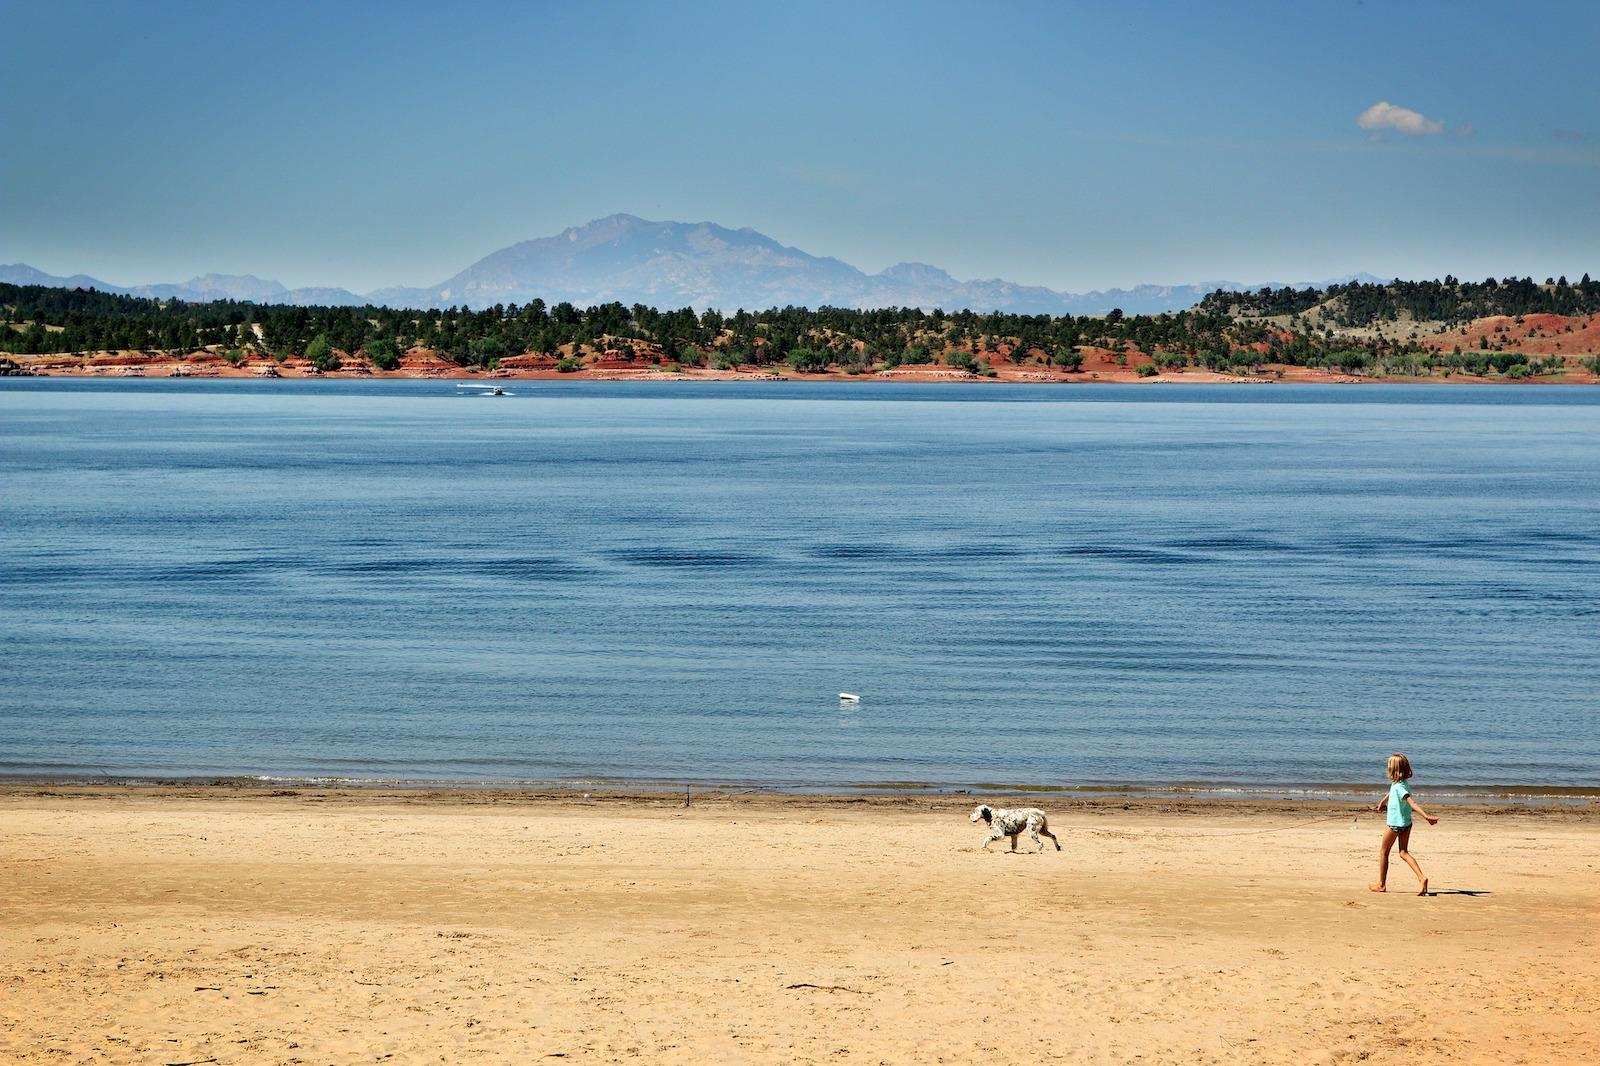 Child and dog walking on the shore of Glendo State Park in Platte County, Wyoming